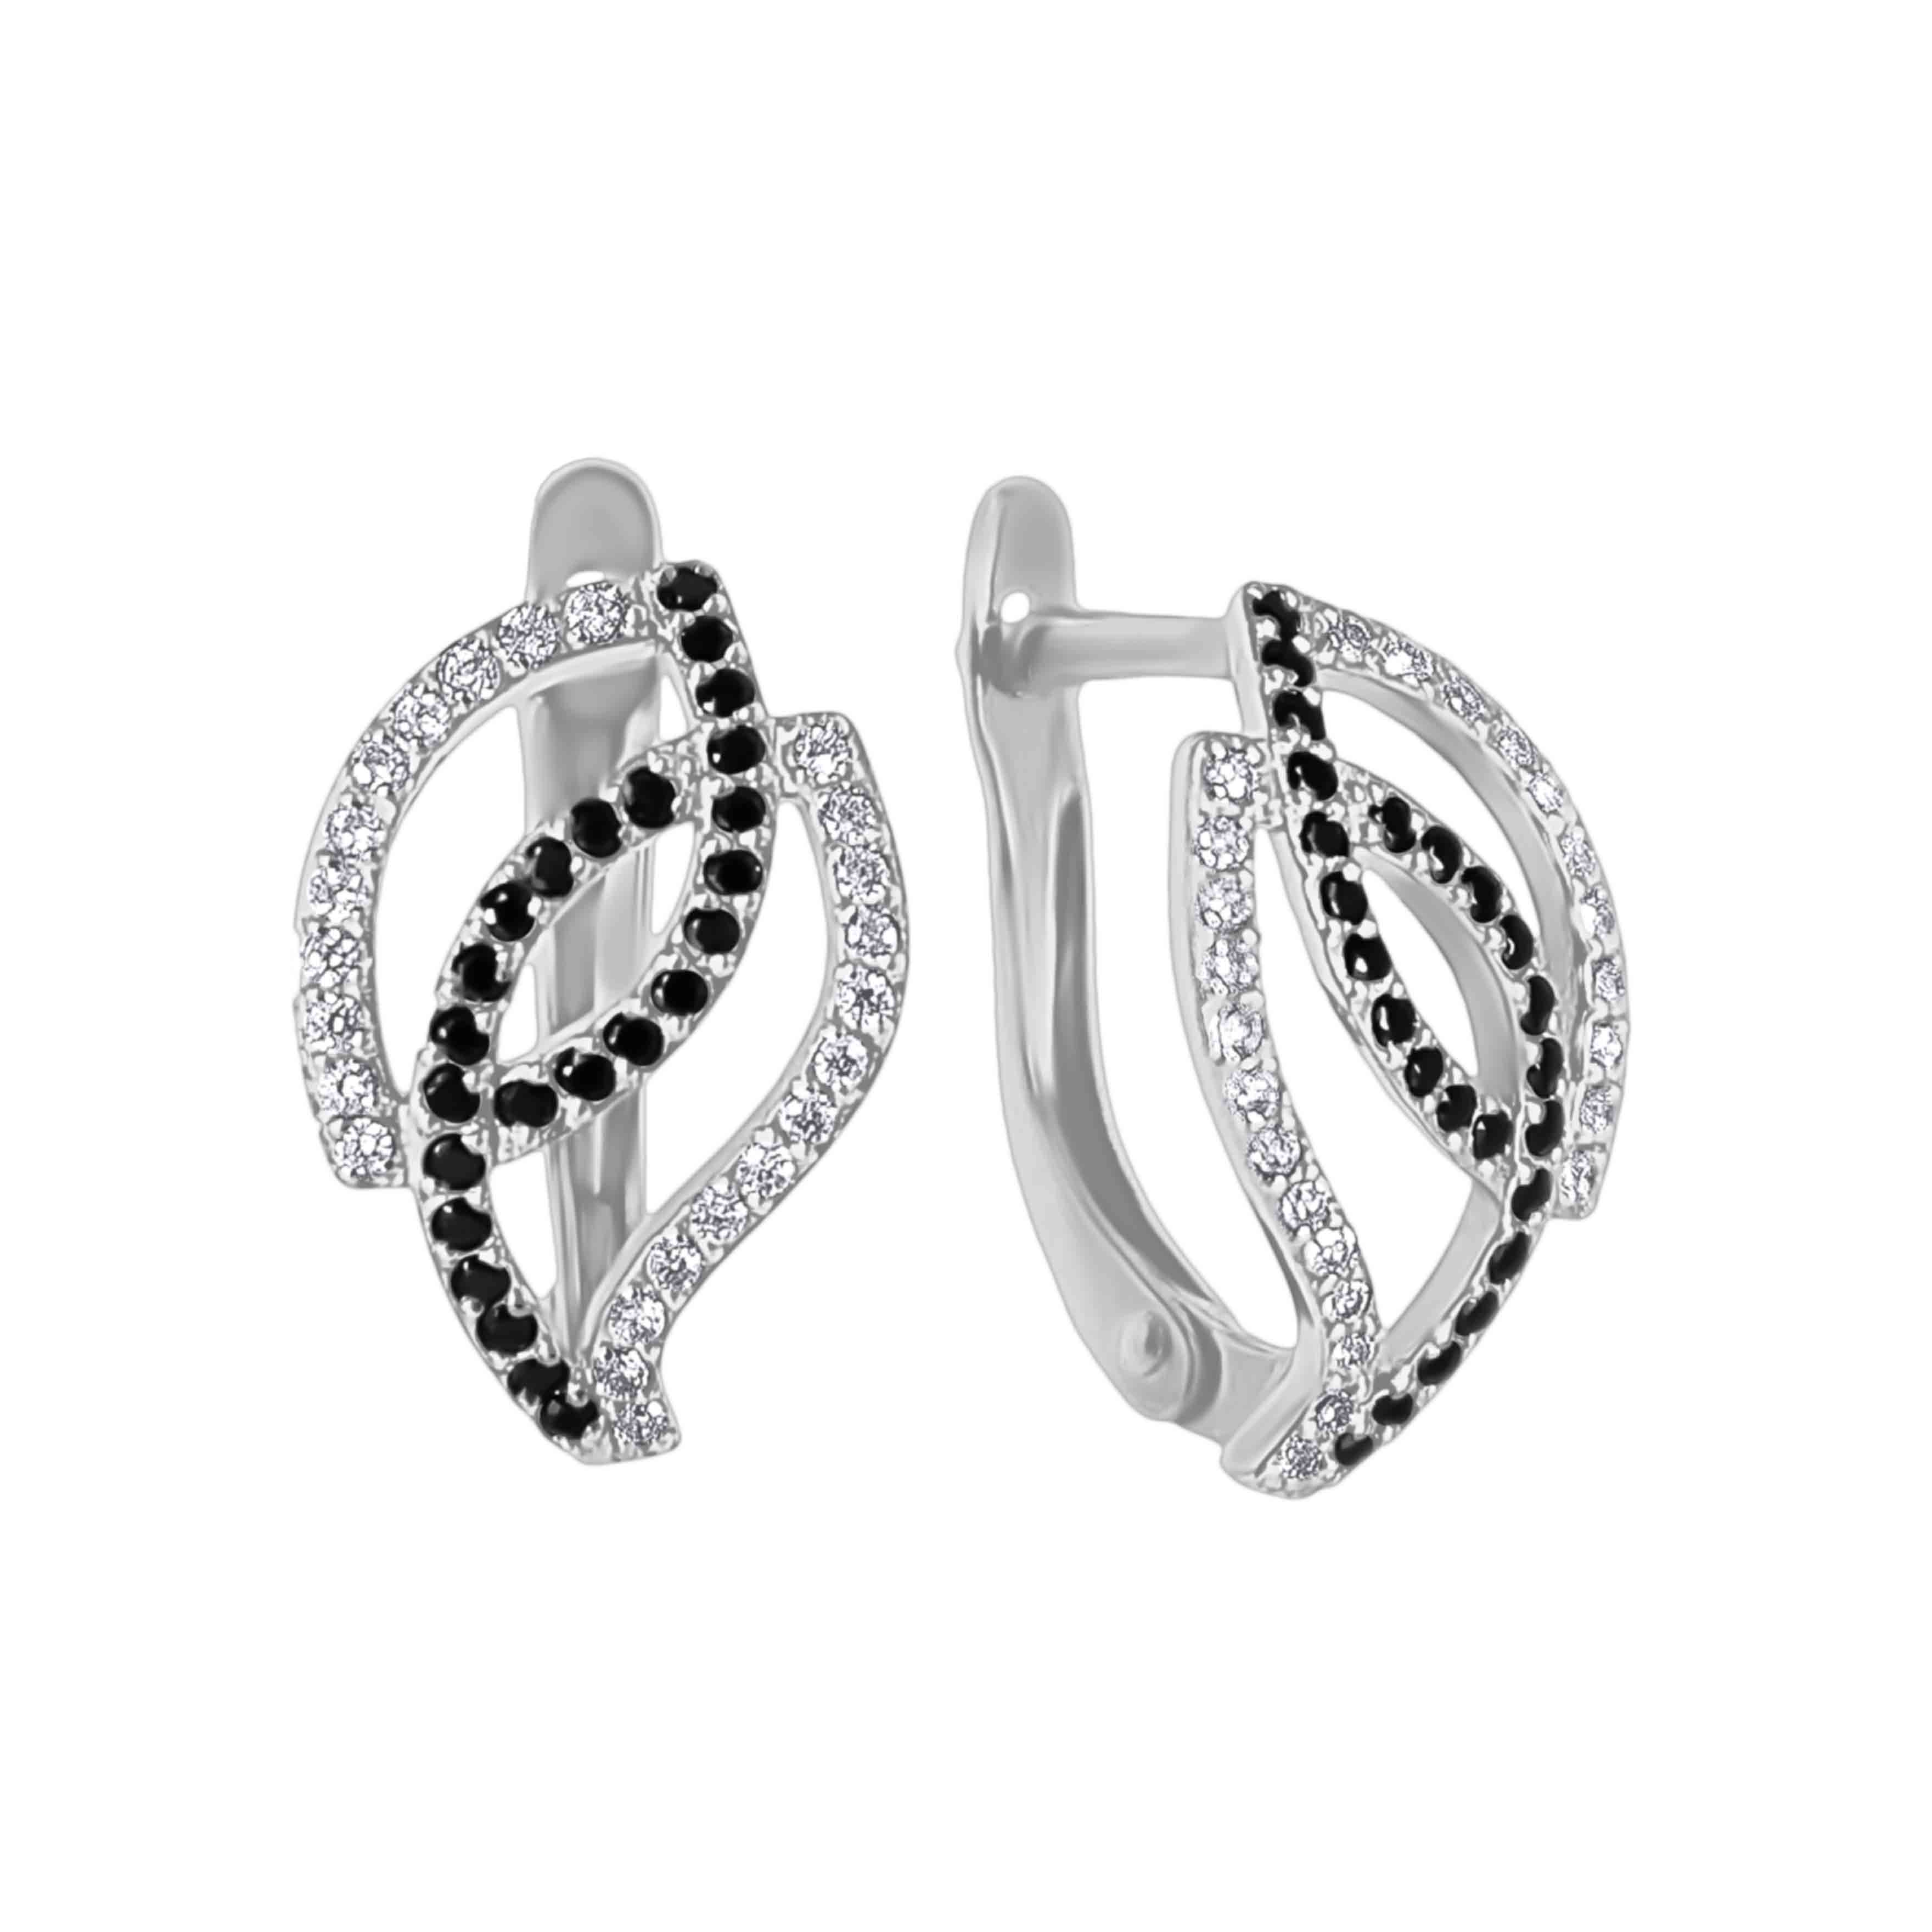 Black & White CZ Earrings